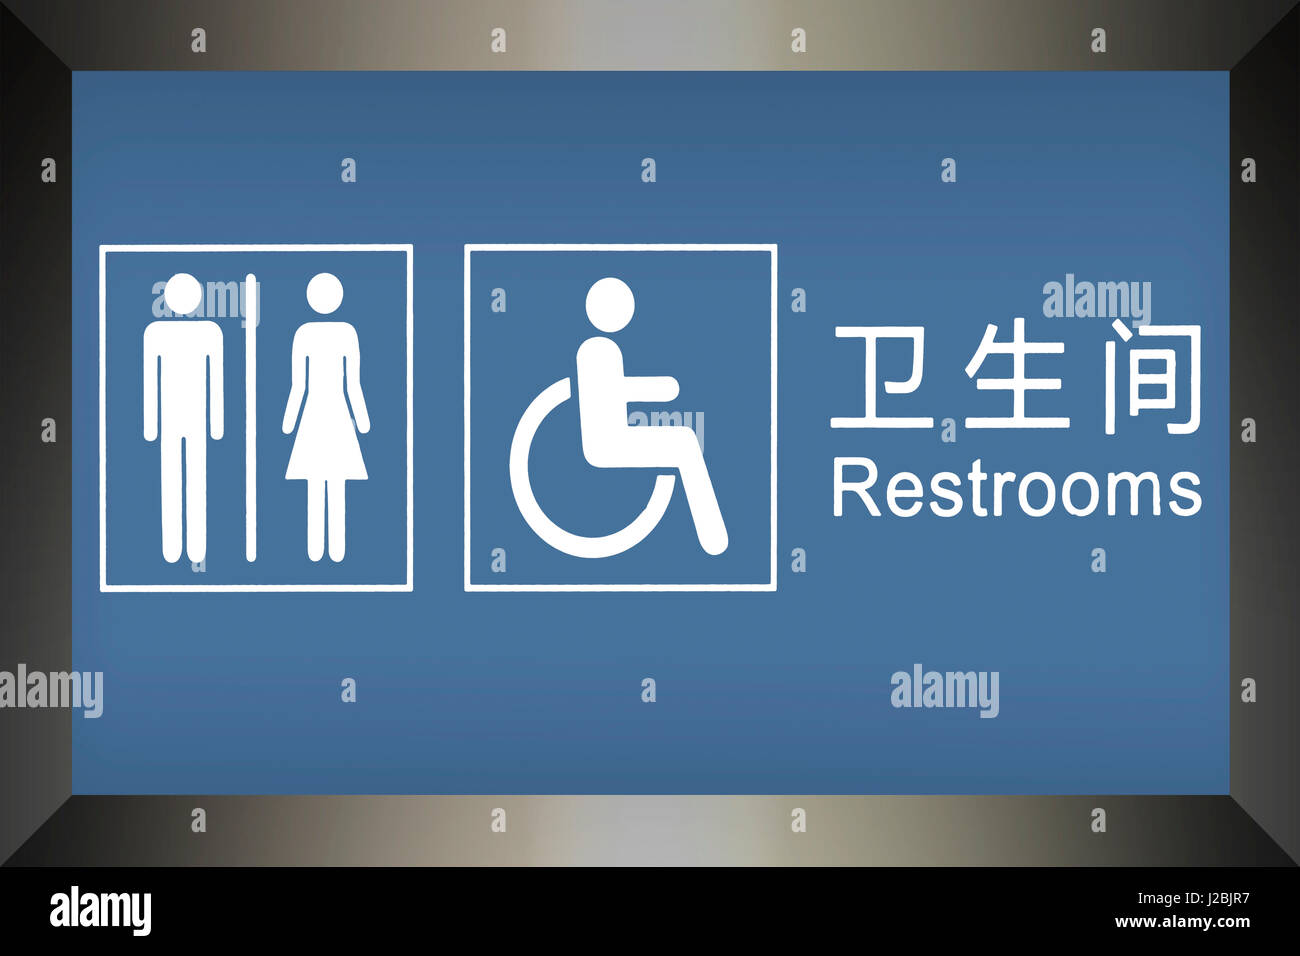 the public restroom essay The federal government has ordered all public schools in america to allow transgender students to use the bathroom of the gender they identify with, and 33% of american adults support this decision.